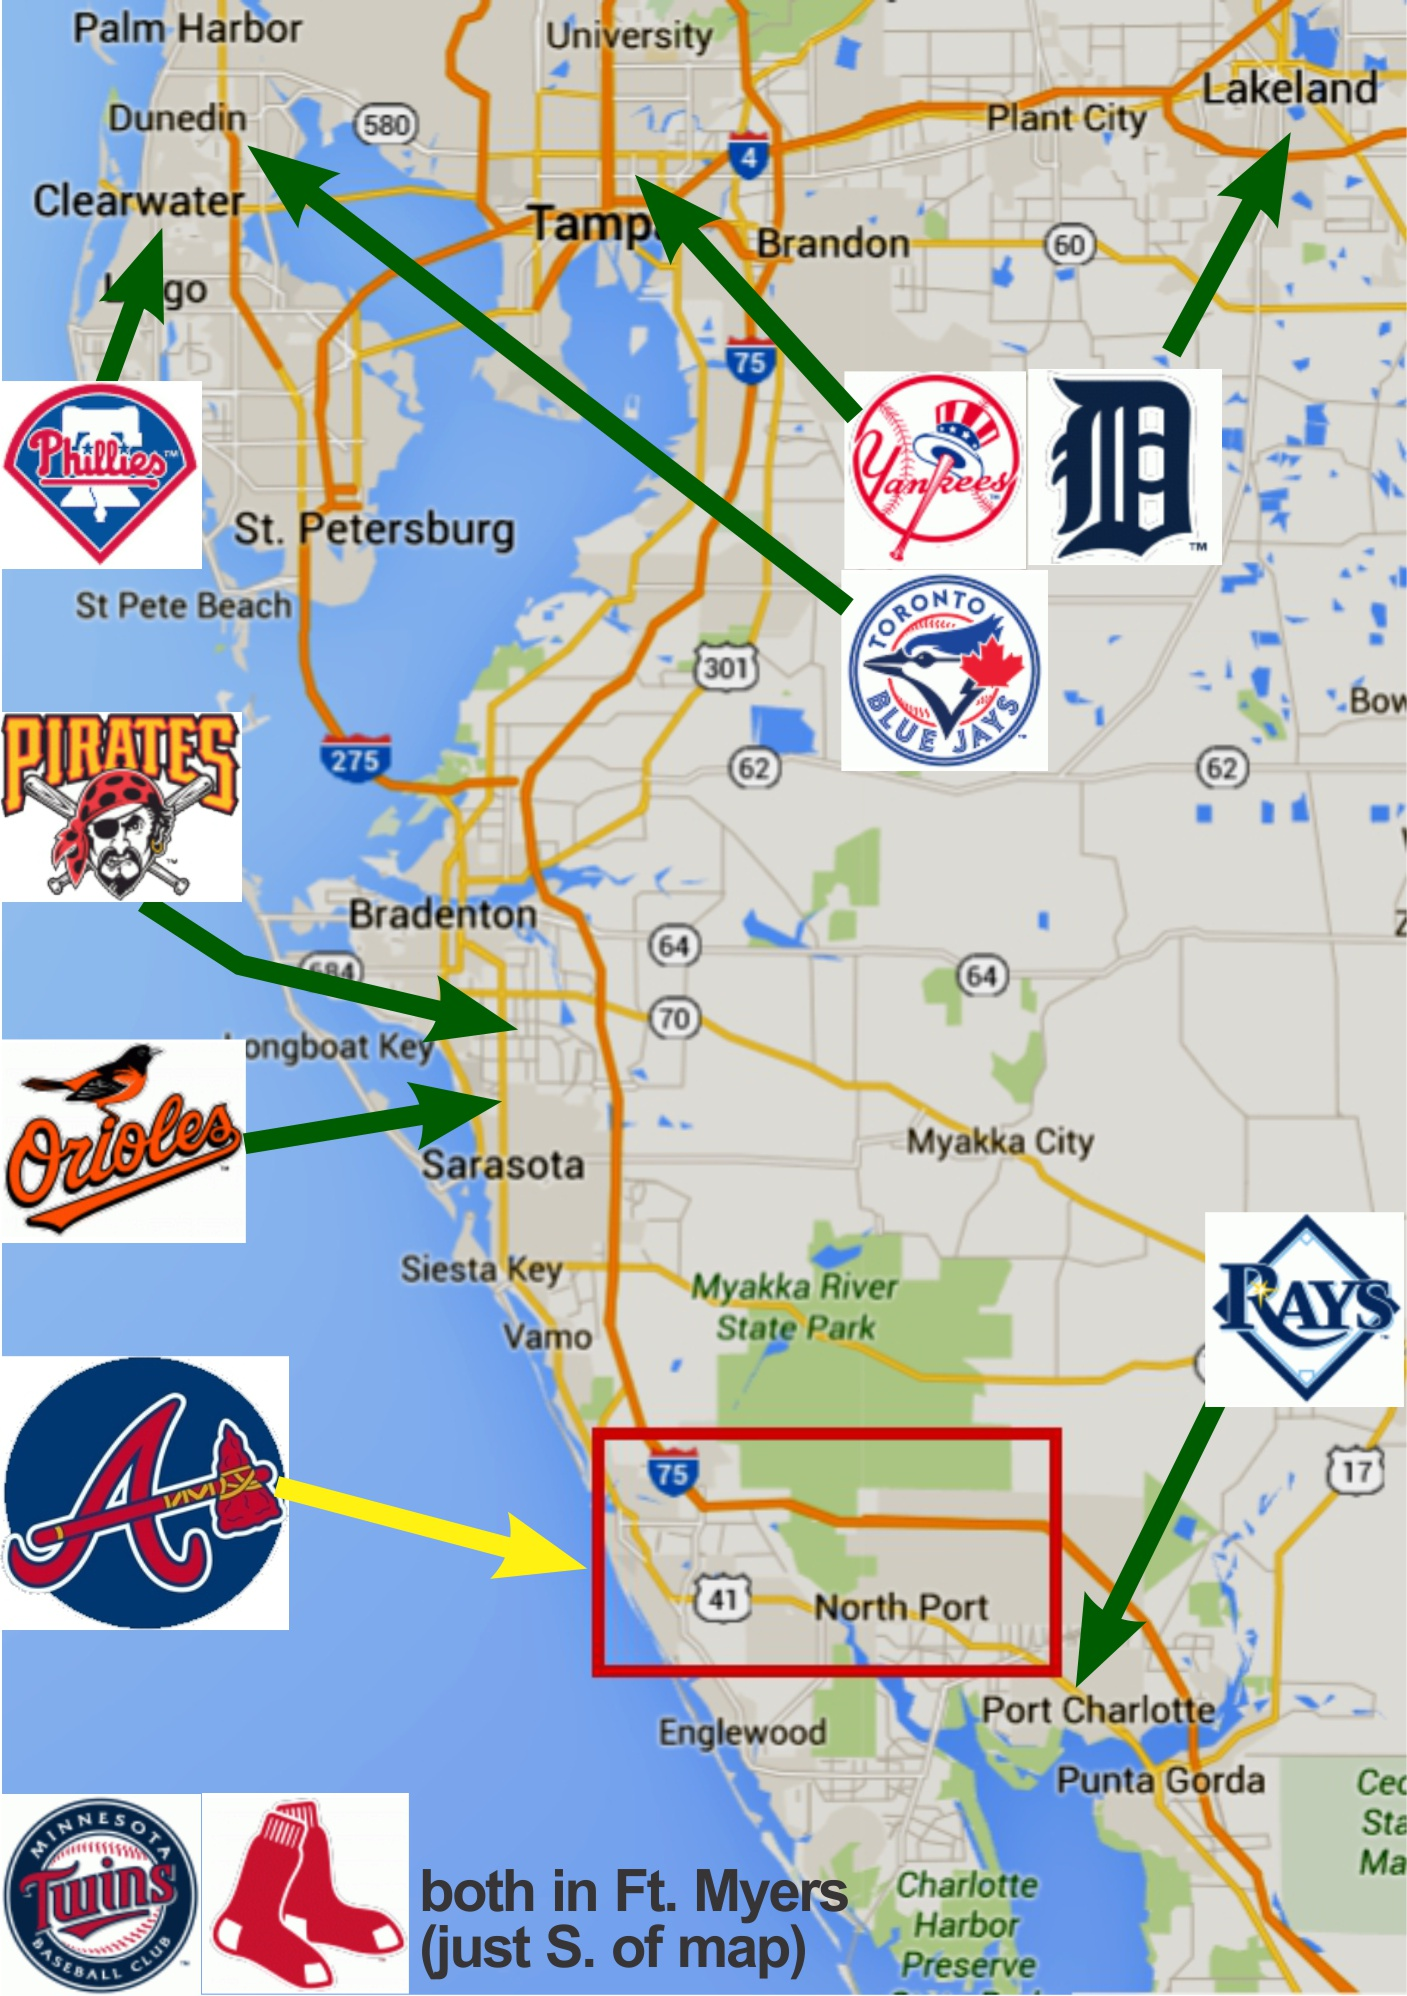 Braves Finally Look to Have An Invite to a New Spring Training Home